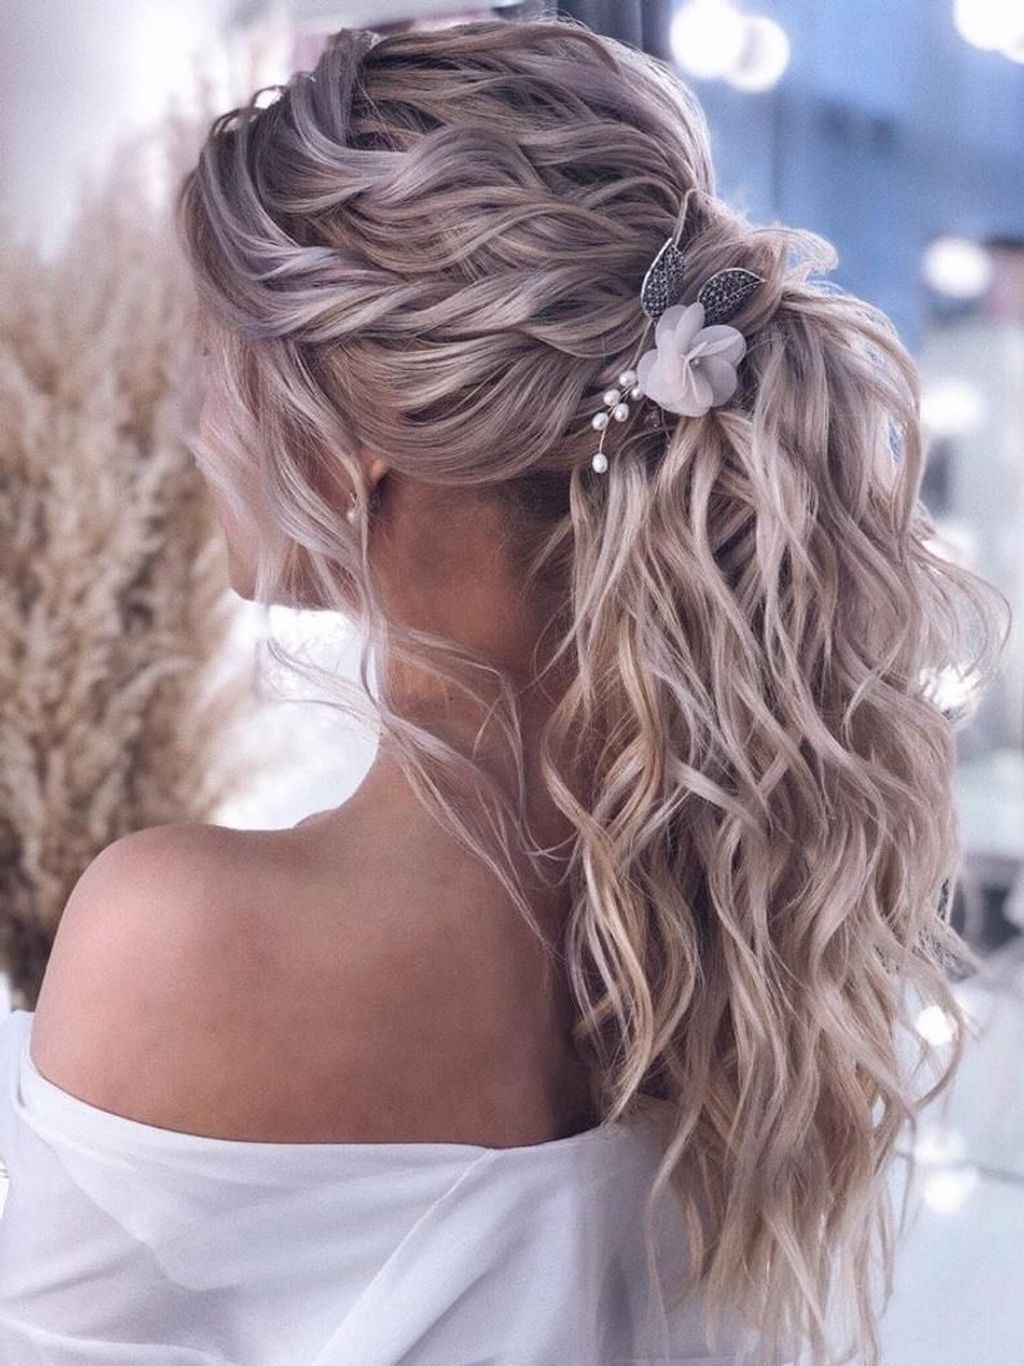 40 Perfect Wedding Hairstyles Ideas For Long Hair Hair Hairstyles Ideas Long Perfect We Thick Hair Styles Rose Gold Hair Comb Wedding Flower Hair Comb